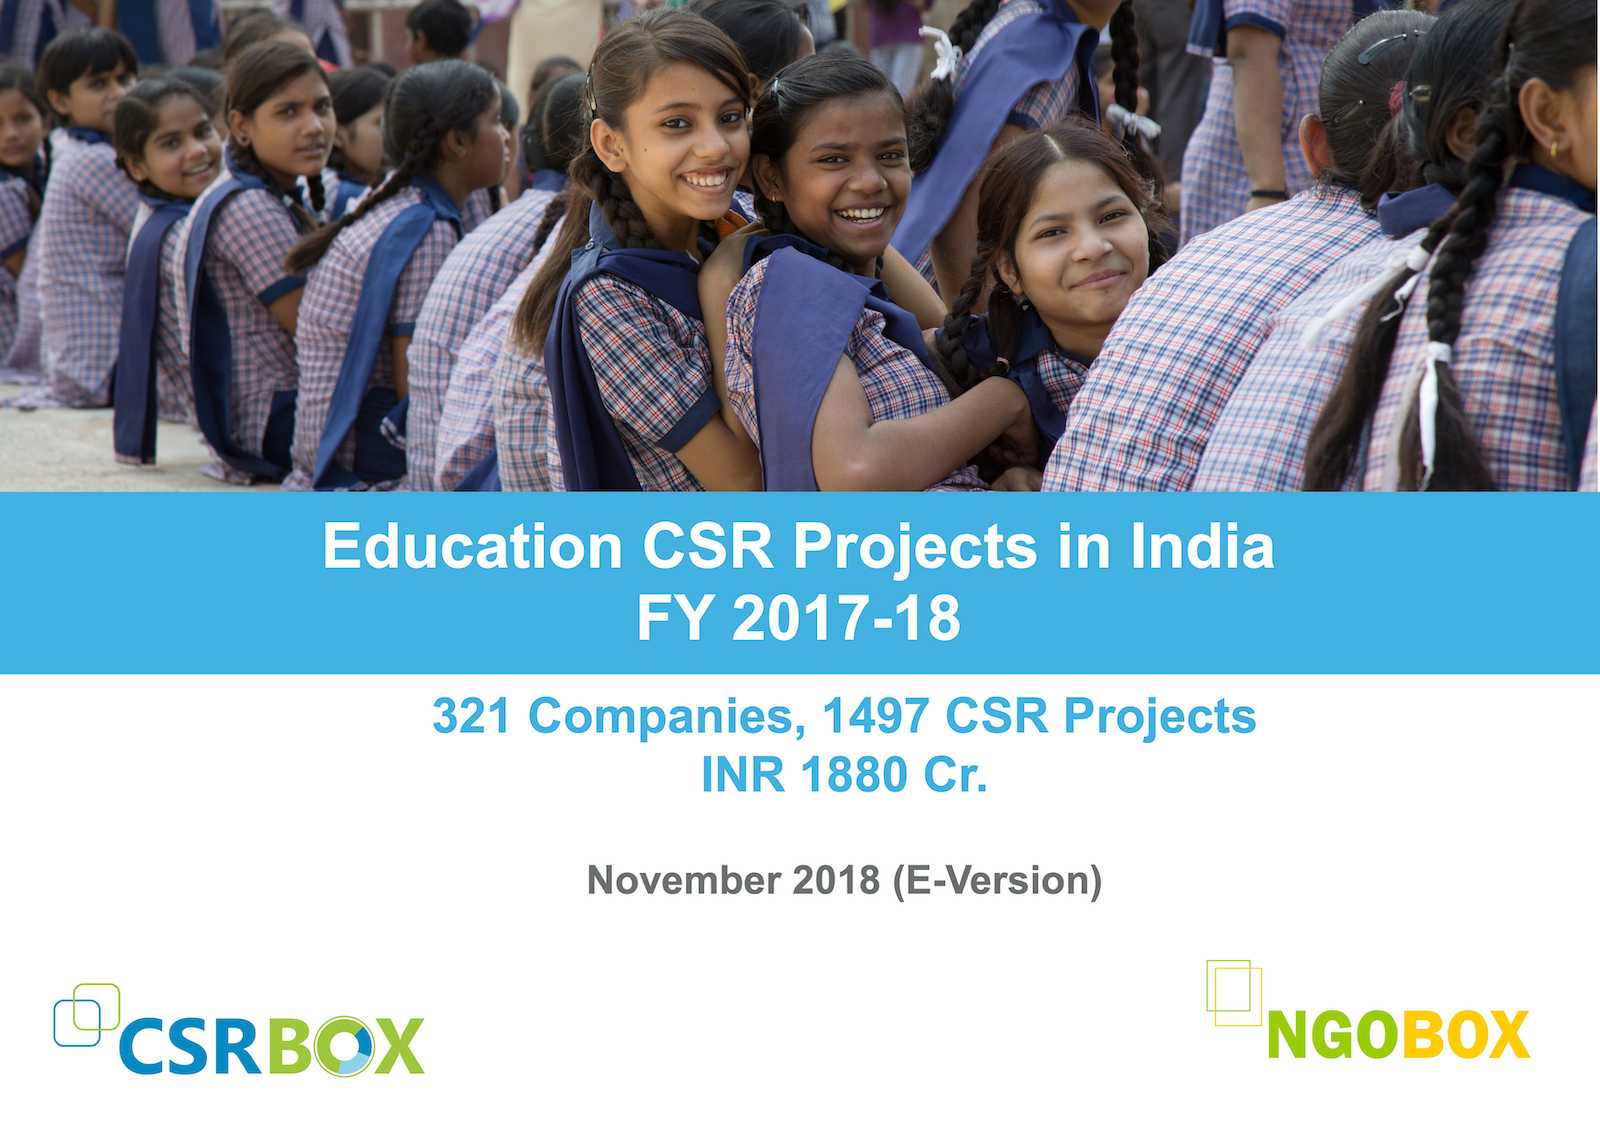 NGO jobs in India, Jobs in NGO in India, Grants for NGOs in